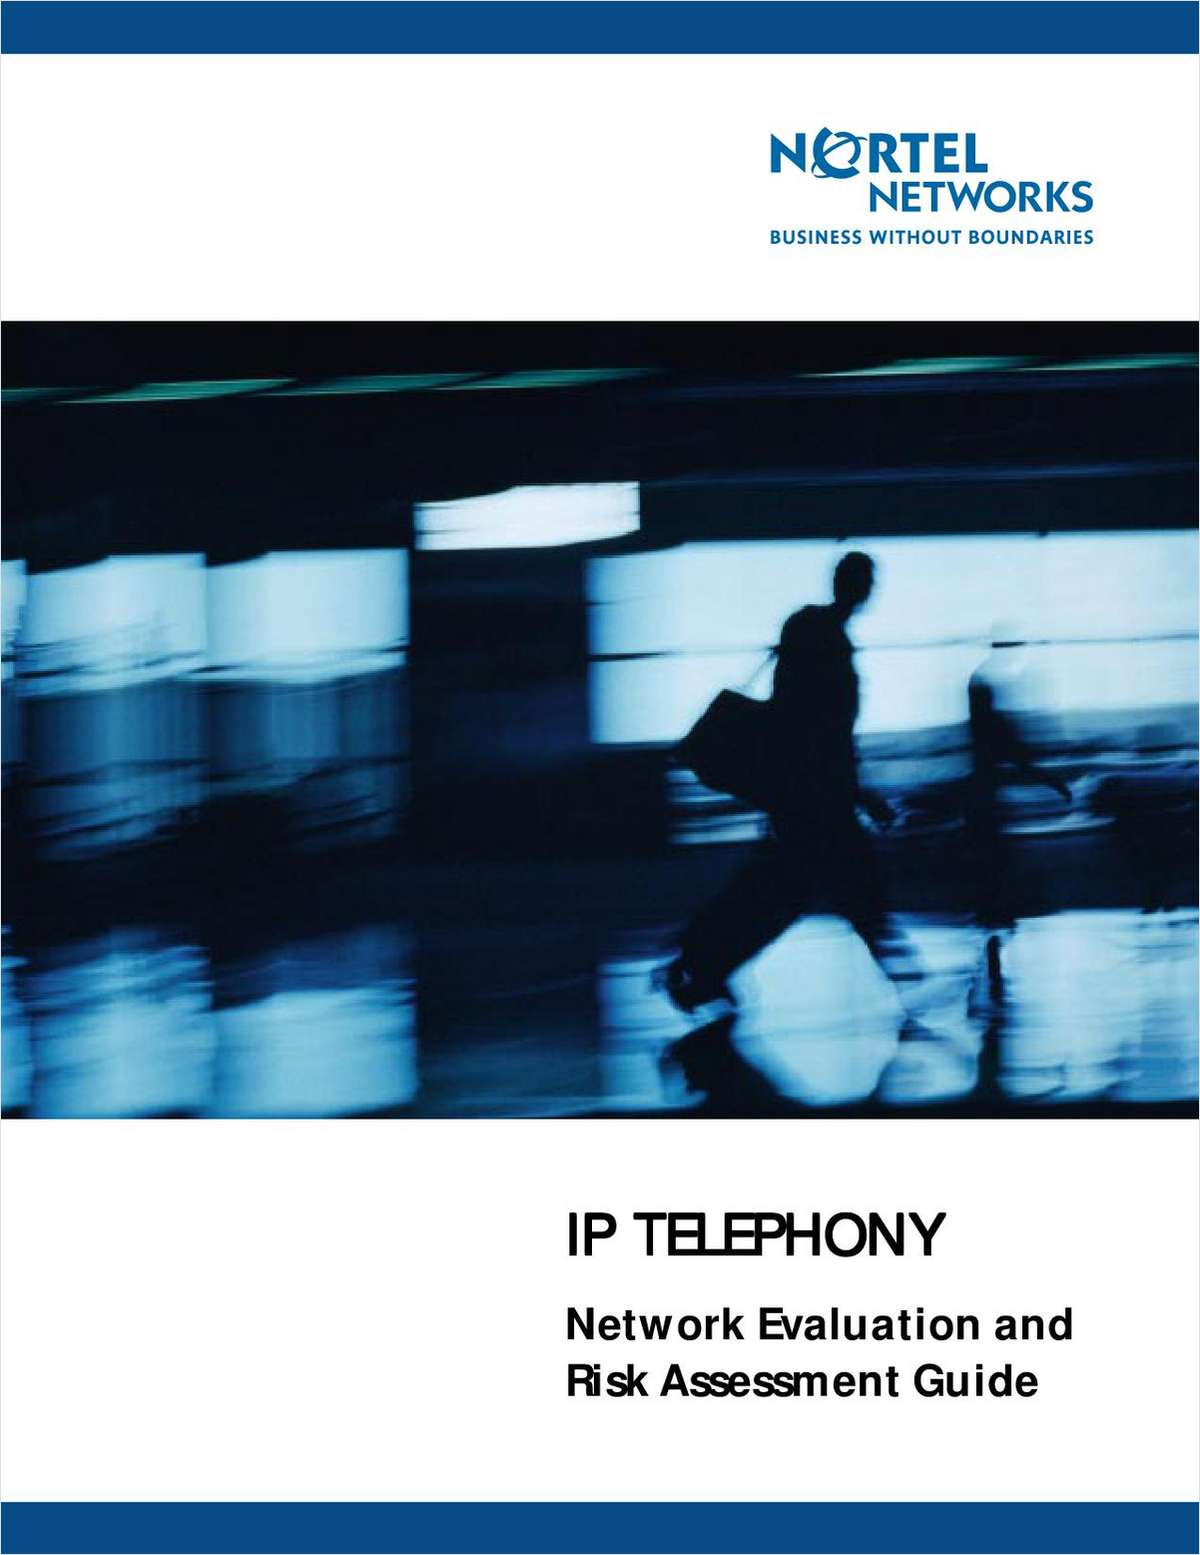 IP Telephony Network Evaluation and Risk Assessment Guide